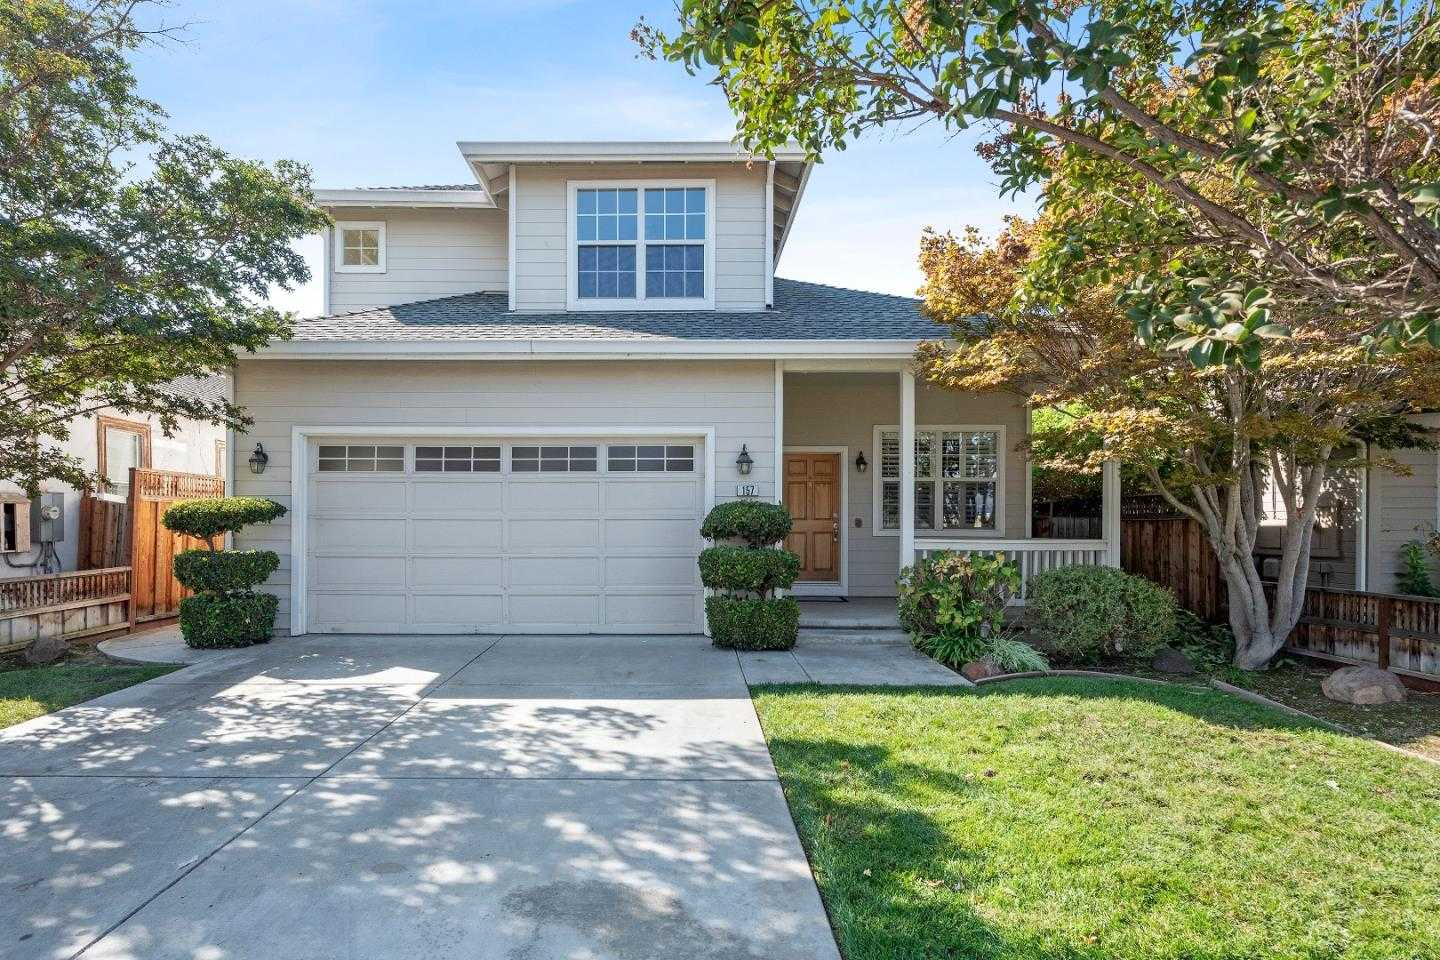 $1,399,000 - 4Br/3Ba -  for Sale in San Jose